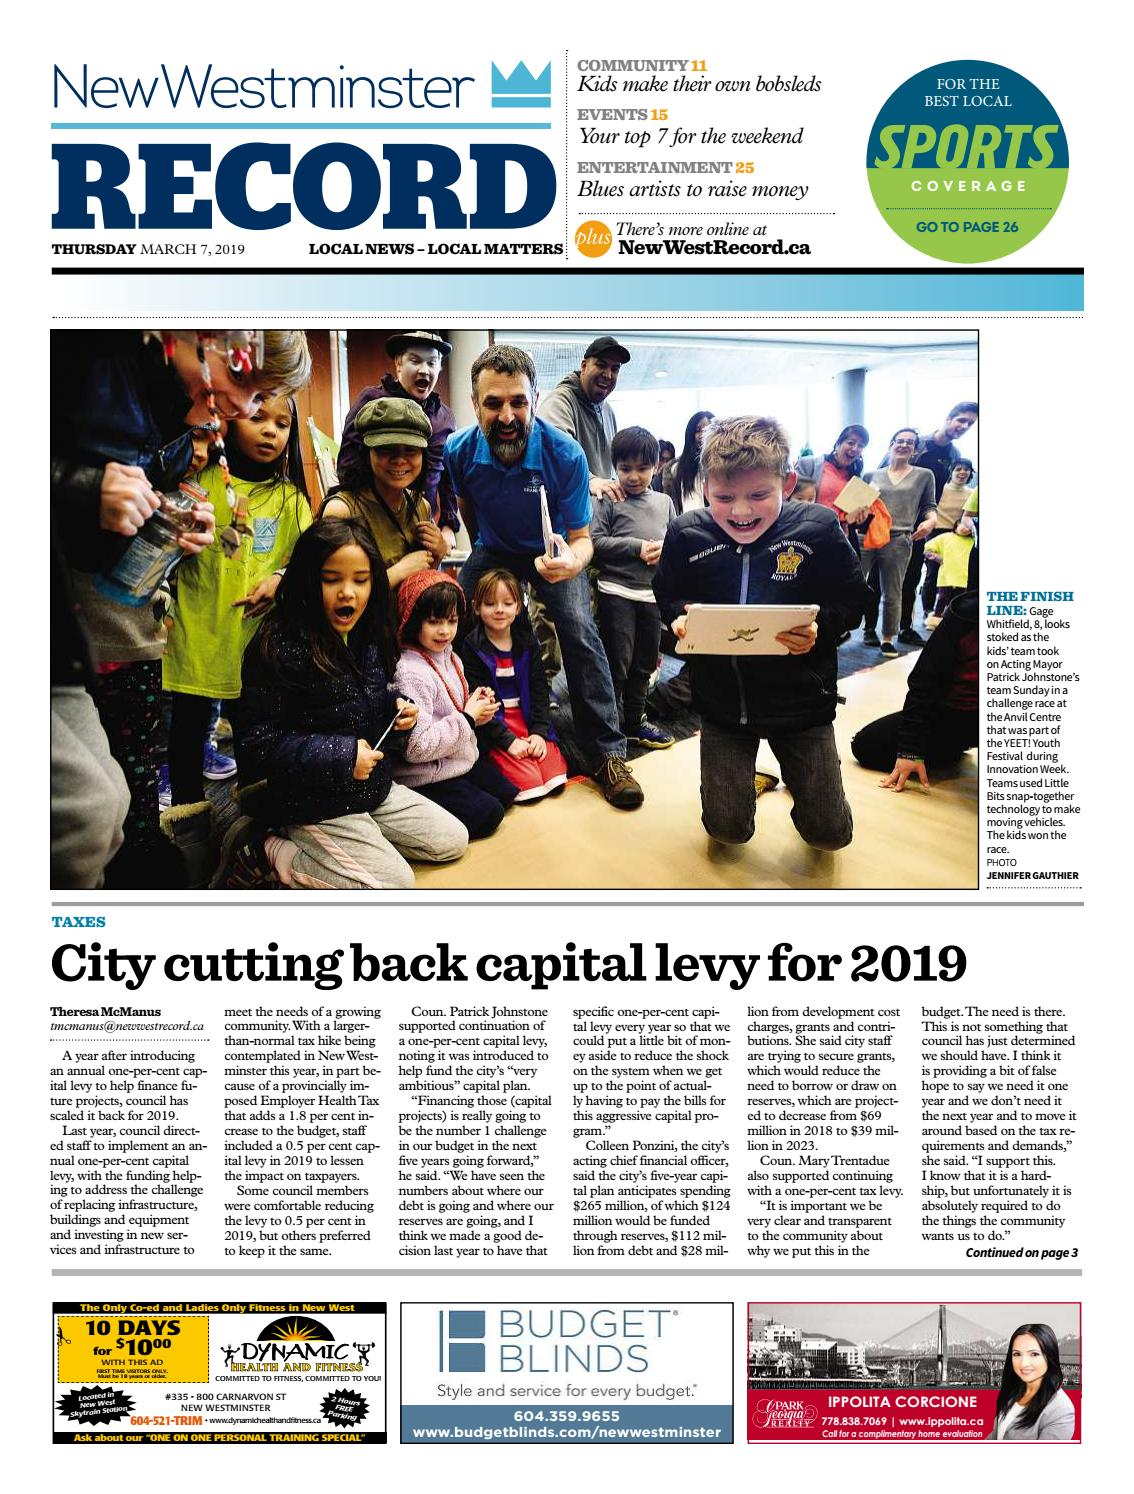 March 7 Westminster Record 2019 New fg7vY6yb